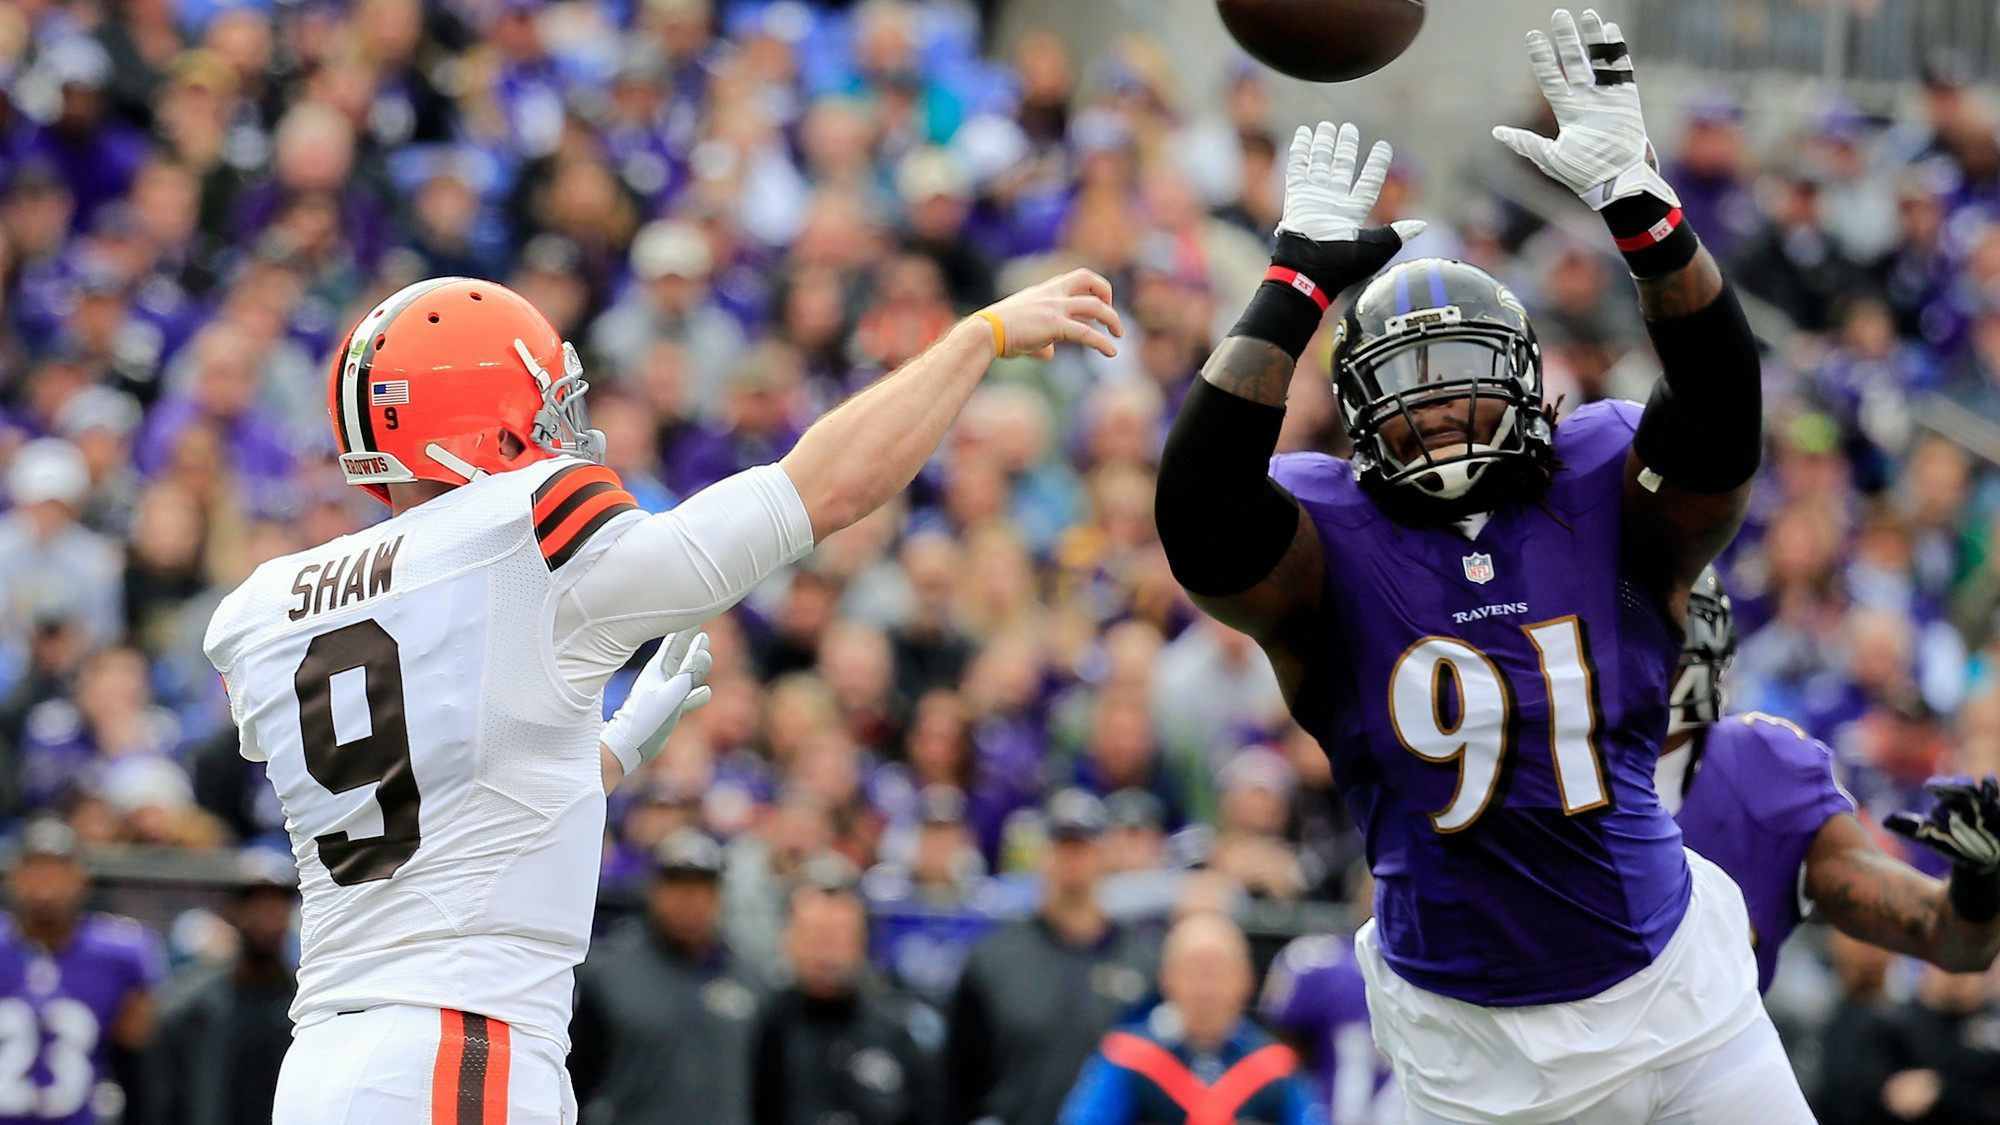 connor shaw cleveland knocked out by ravens nfl 2015 images